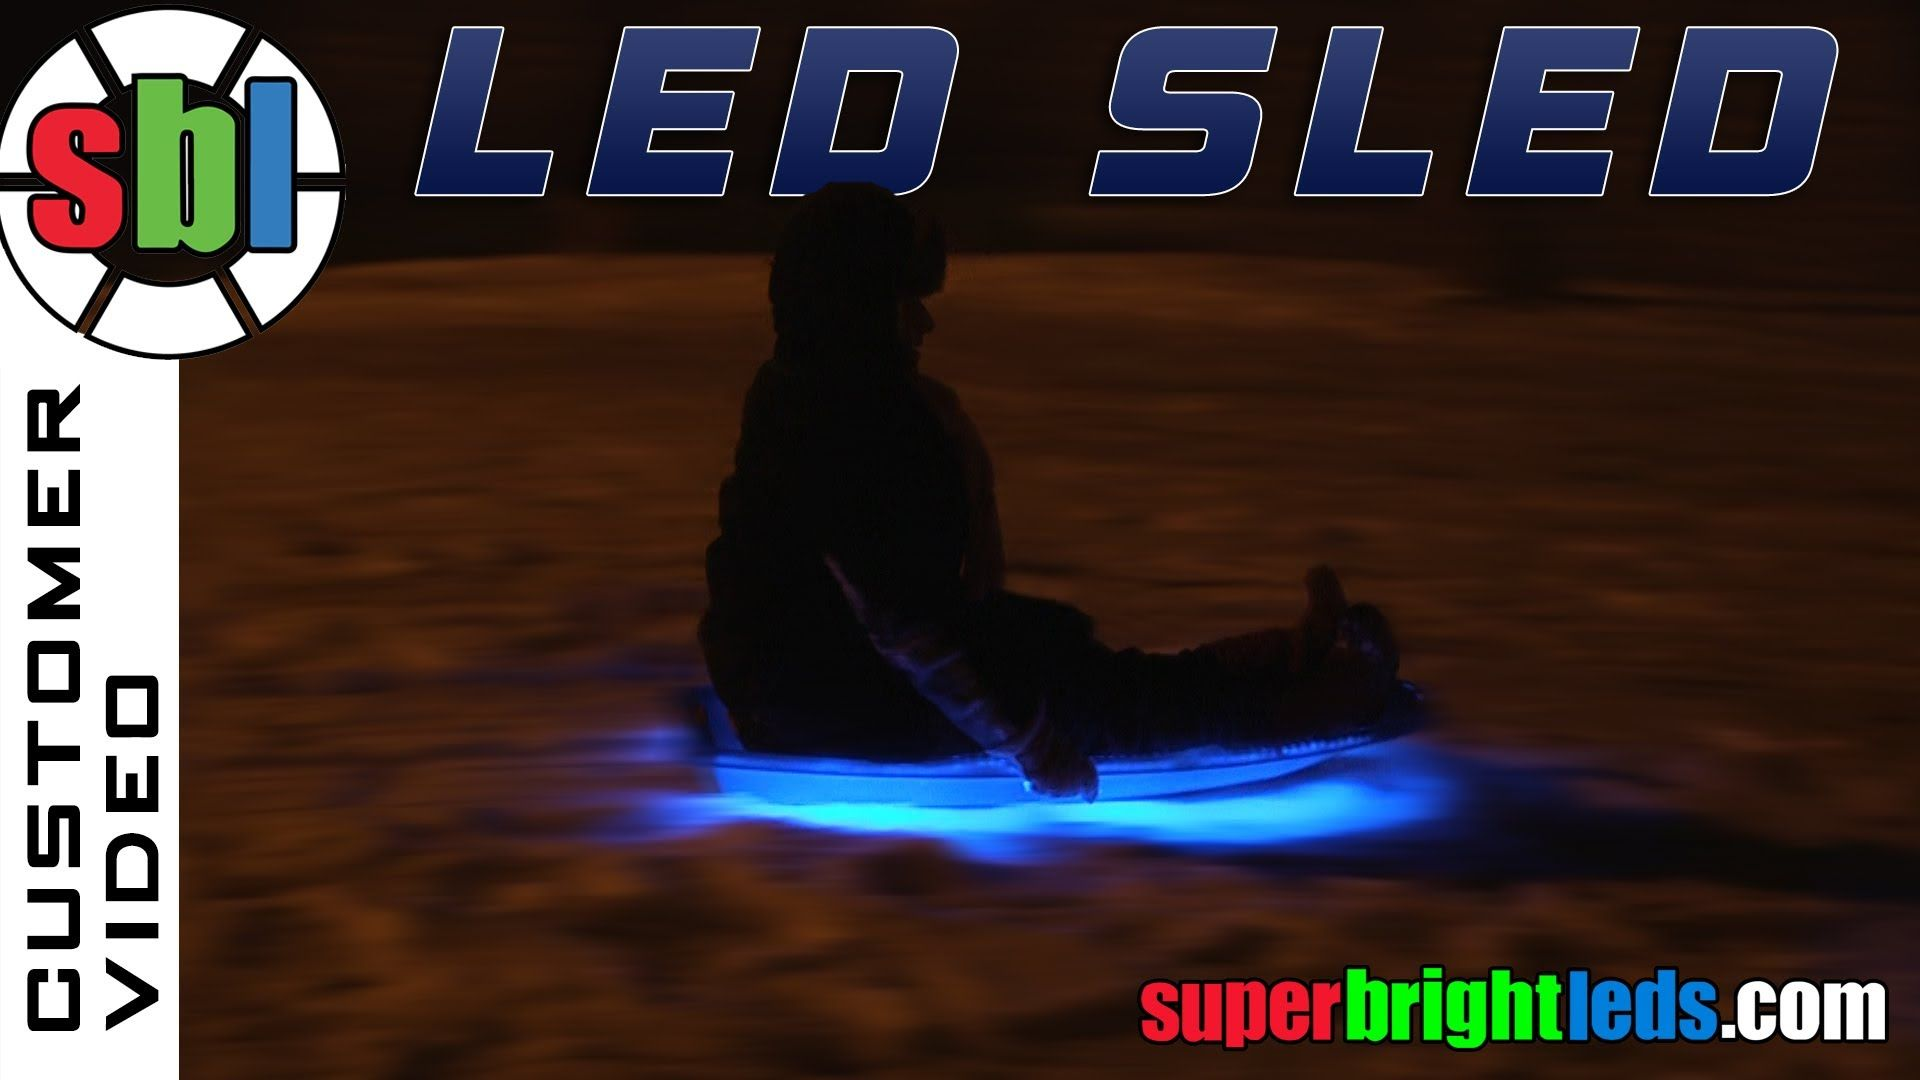 How to add led lights to your sled